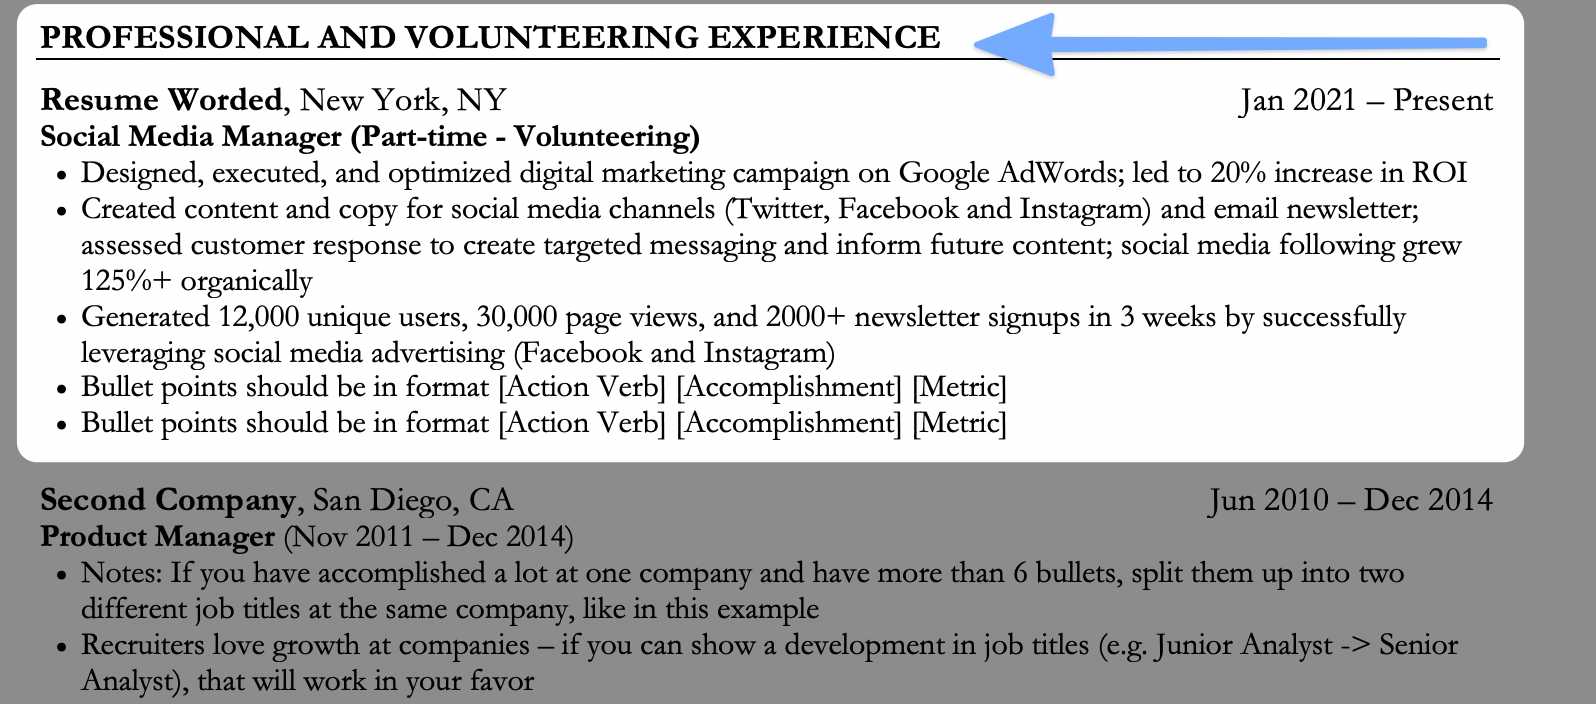 How to list volunteering experience during your time off, to hide a gap on your resume